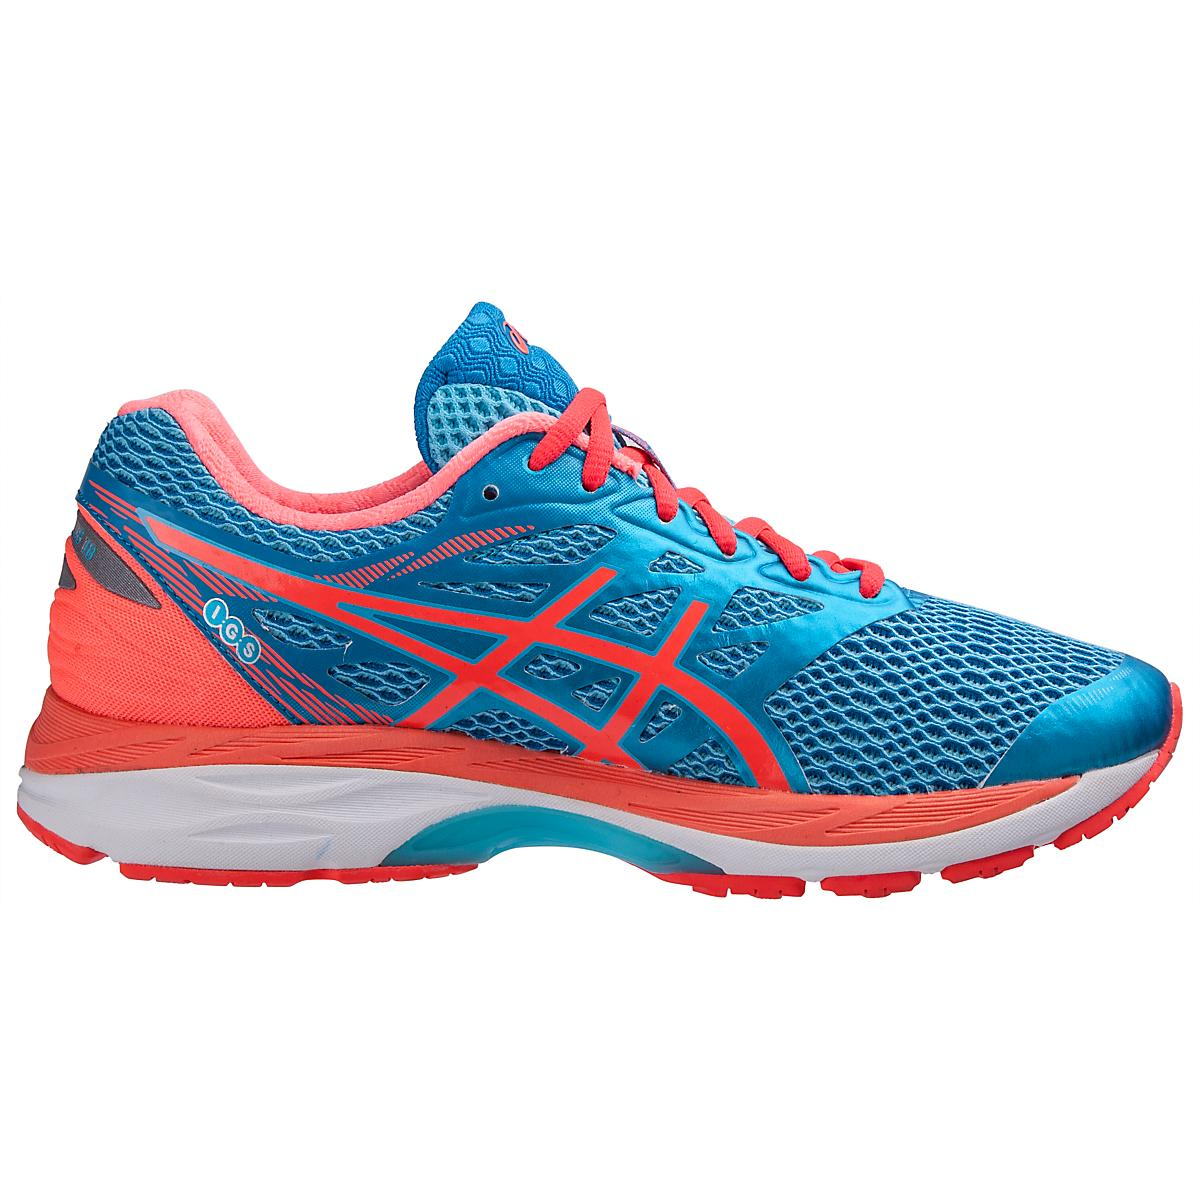 Womens ASICS GEL-Cumulus 18 Running Shoe at Road Runner Sports 0d331d24e0